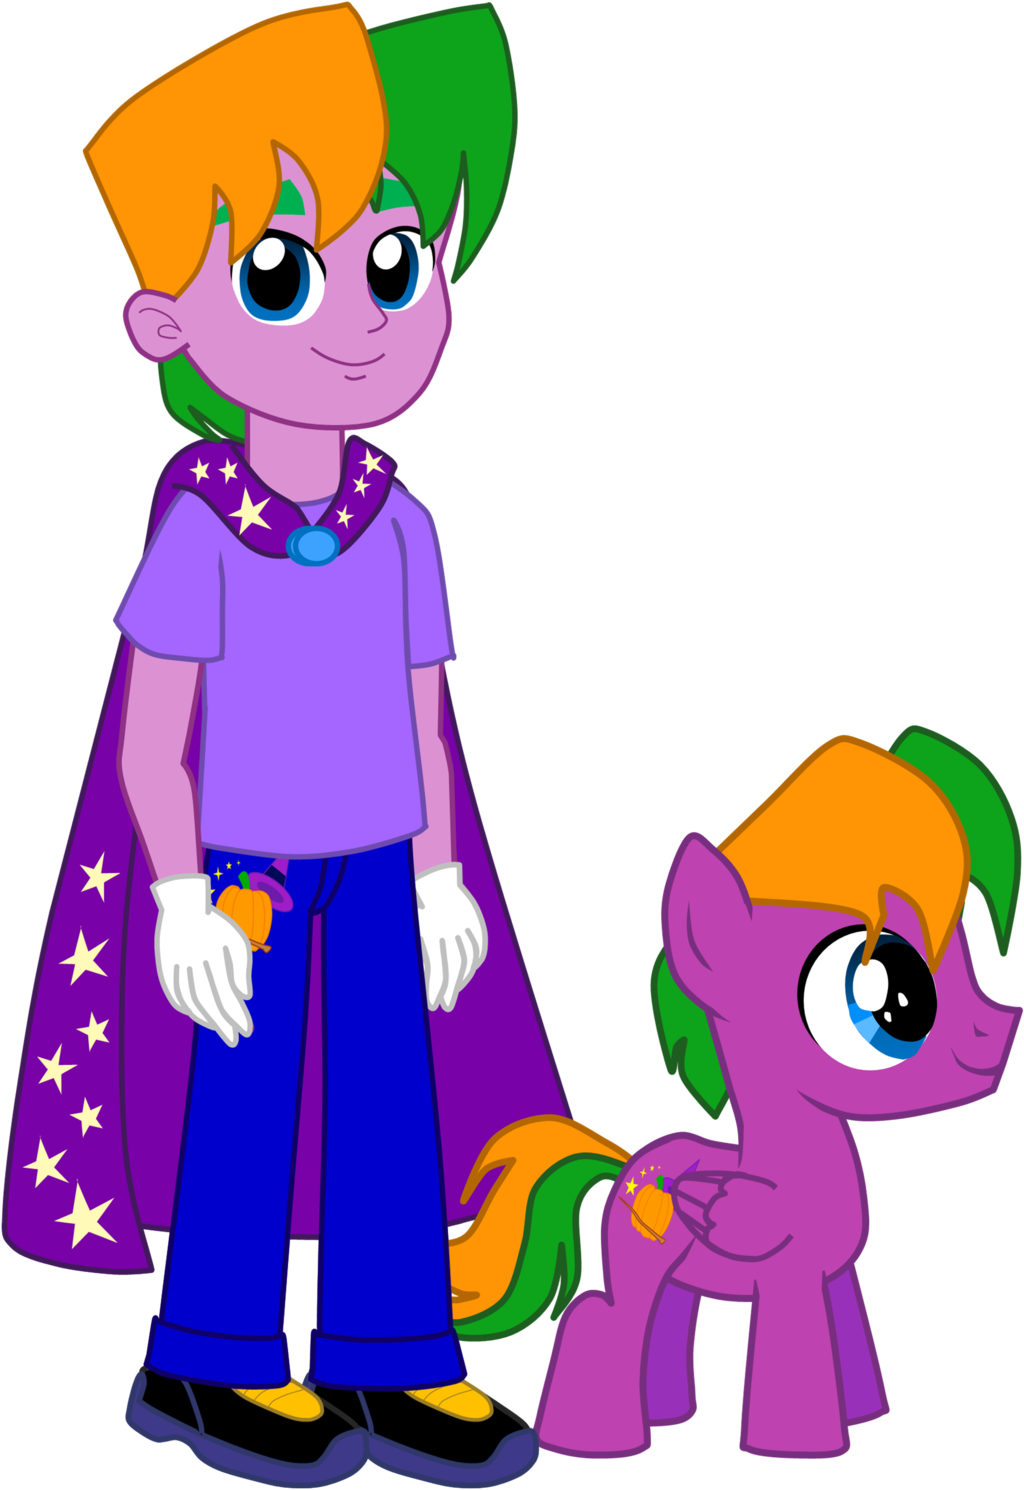 Clipart pumpkin protest different messages from family others screaming svg royalty free library Equestria Boys OC - Pumpkin Sorcerer by shadymeadow on DeviantArt svg royalty free library